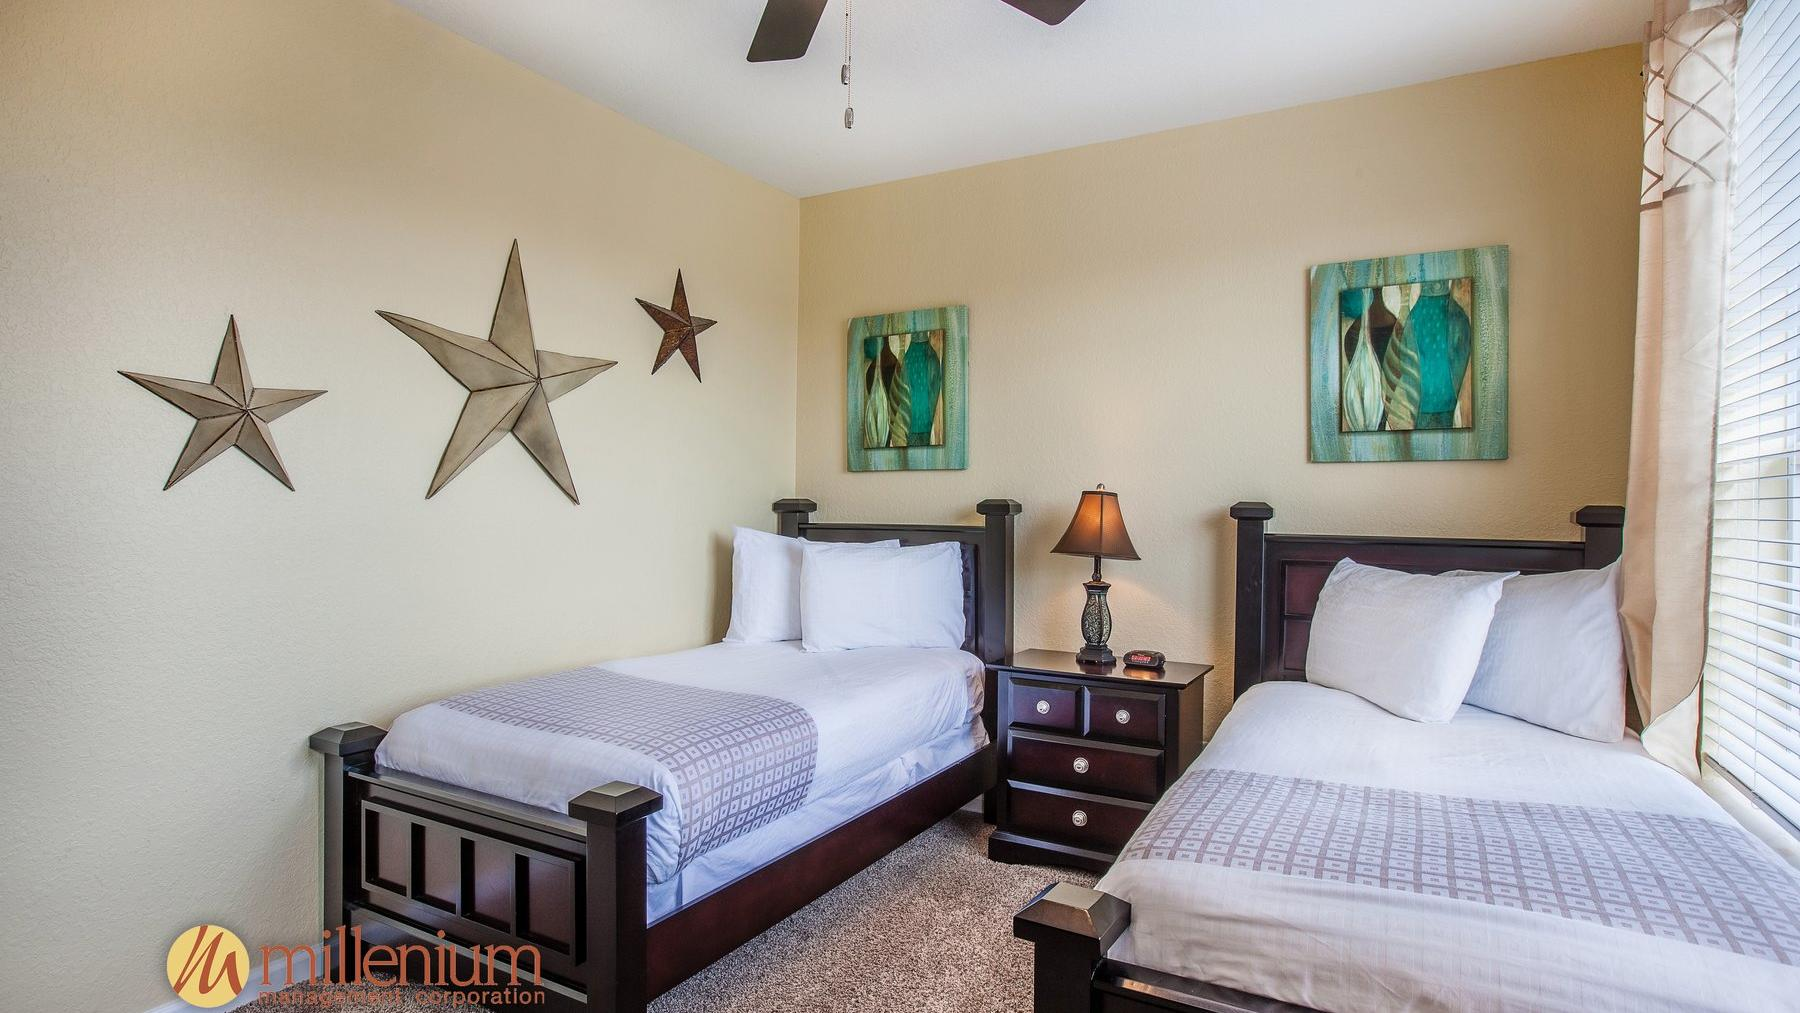 Two twin beds with decorative stars hanging on wall